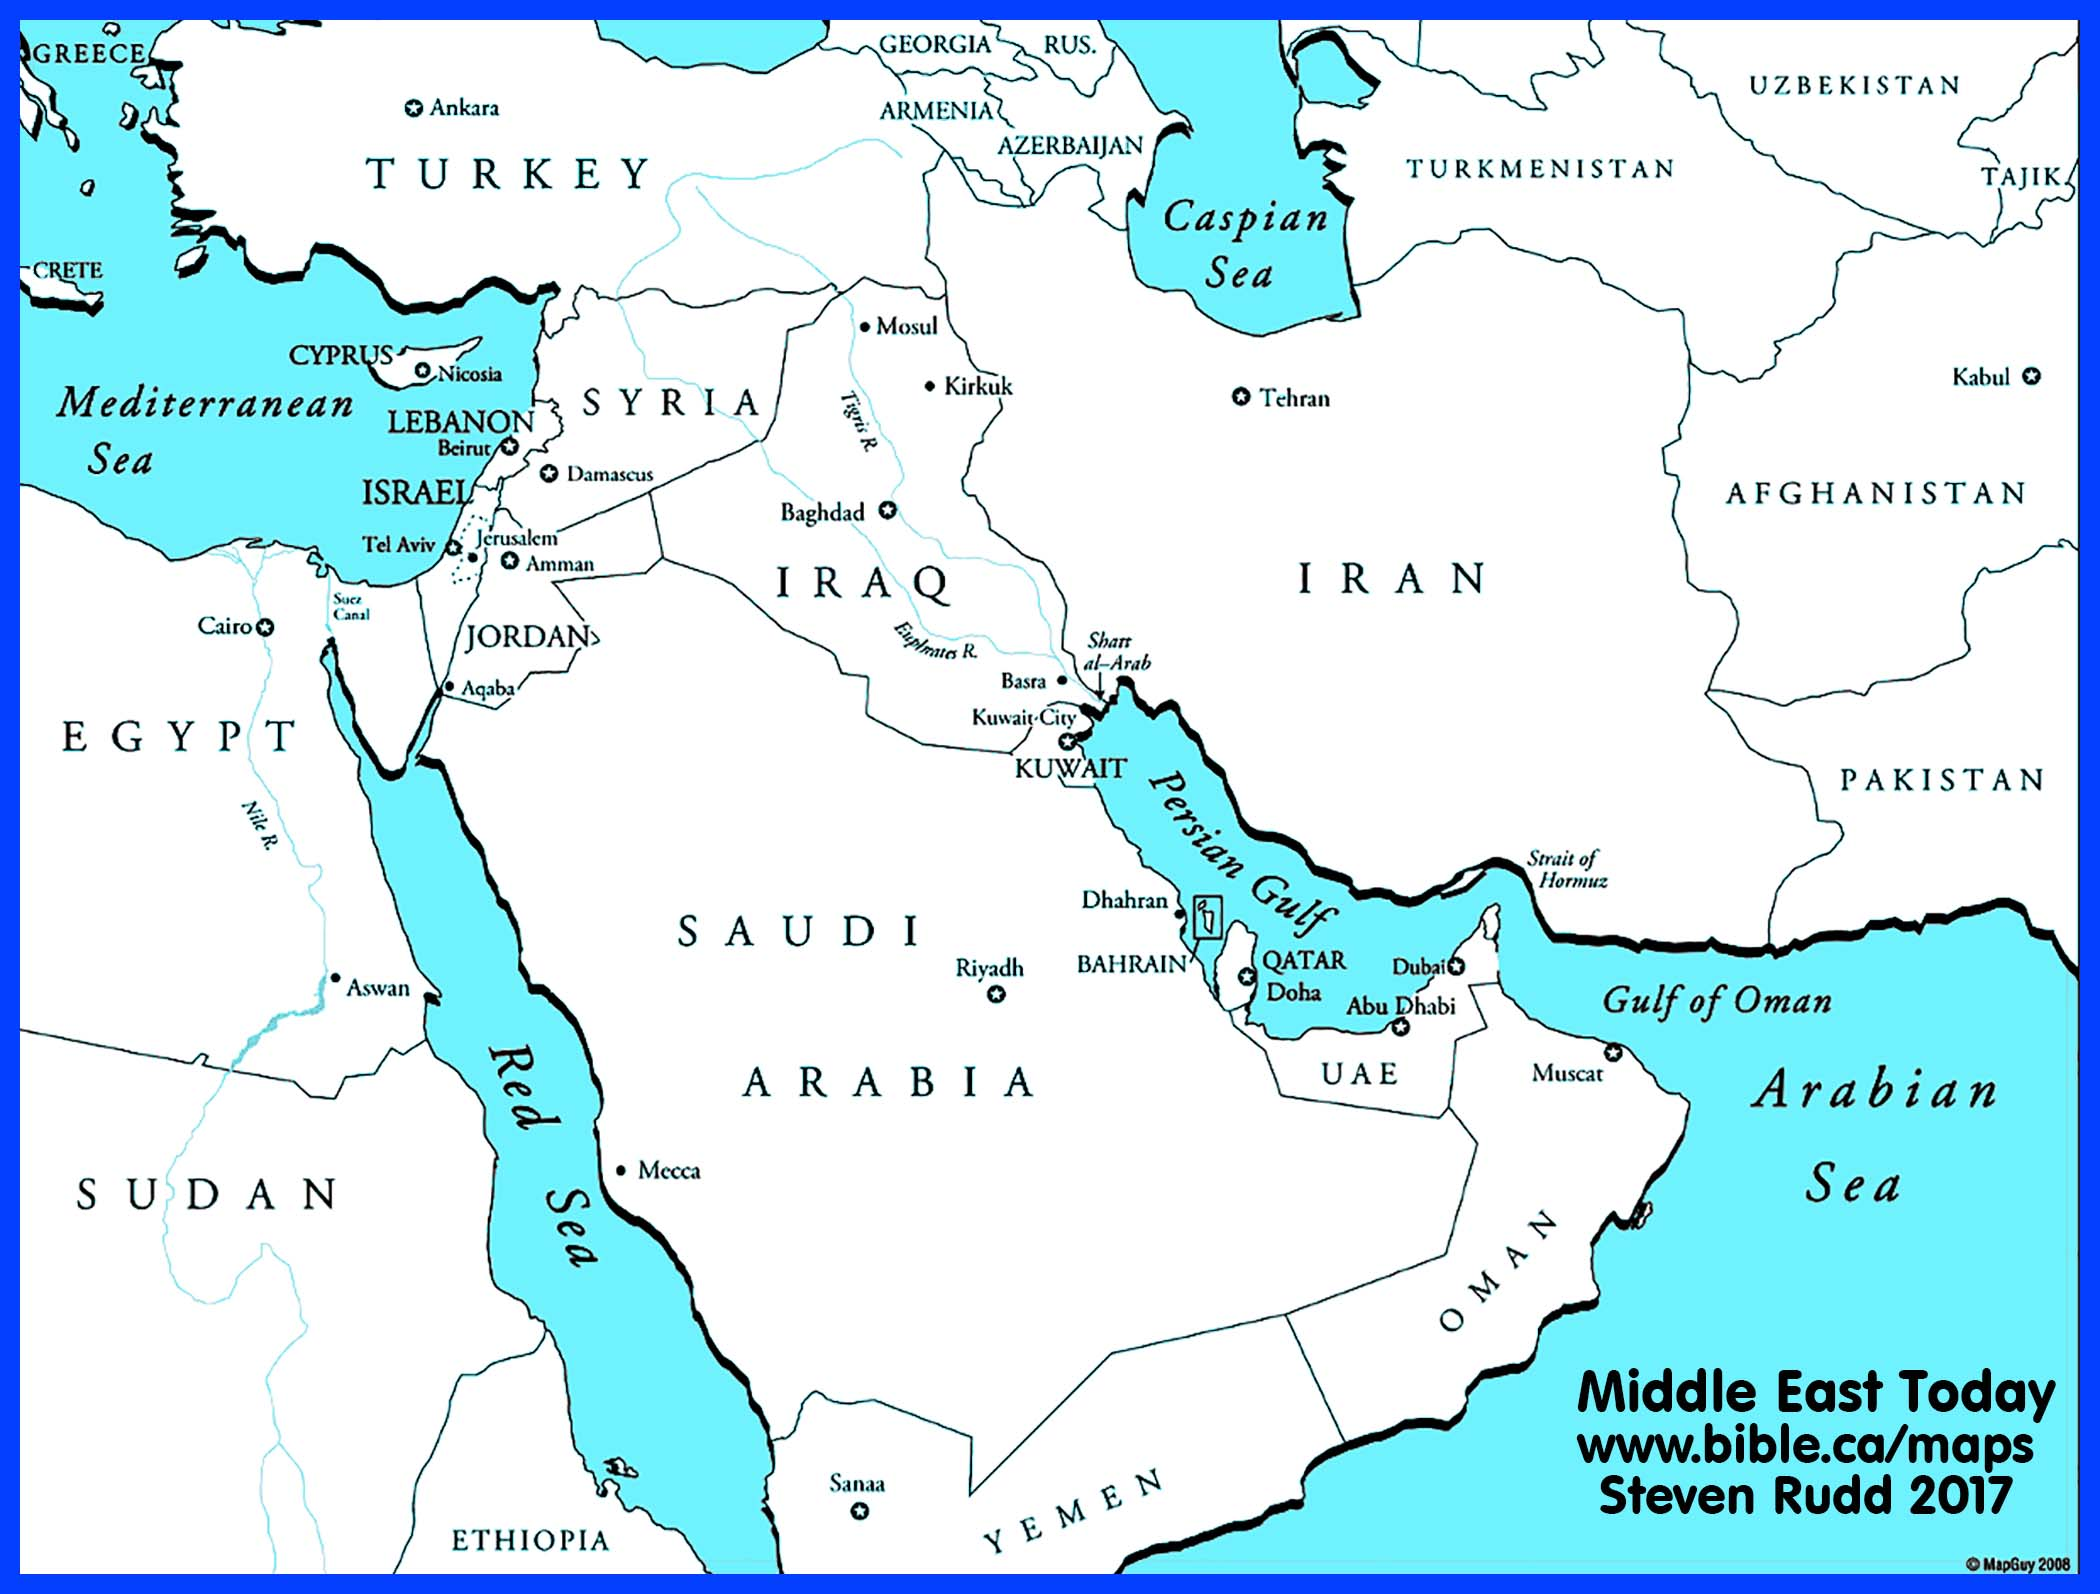 click to view. bible maps middle east today